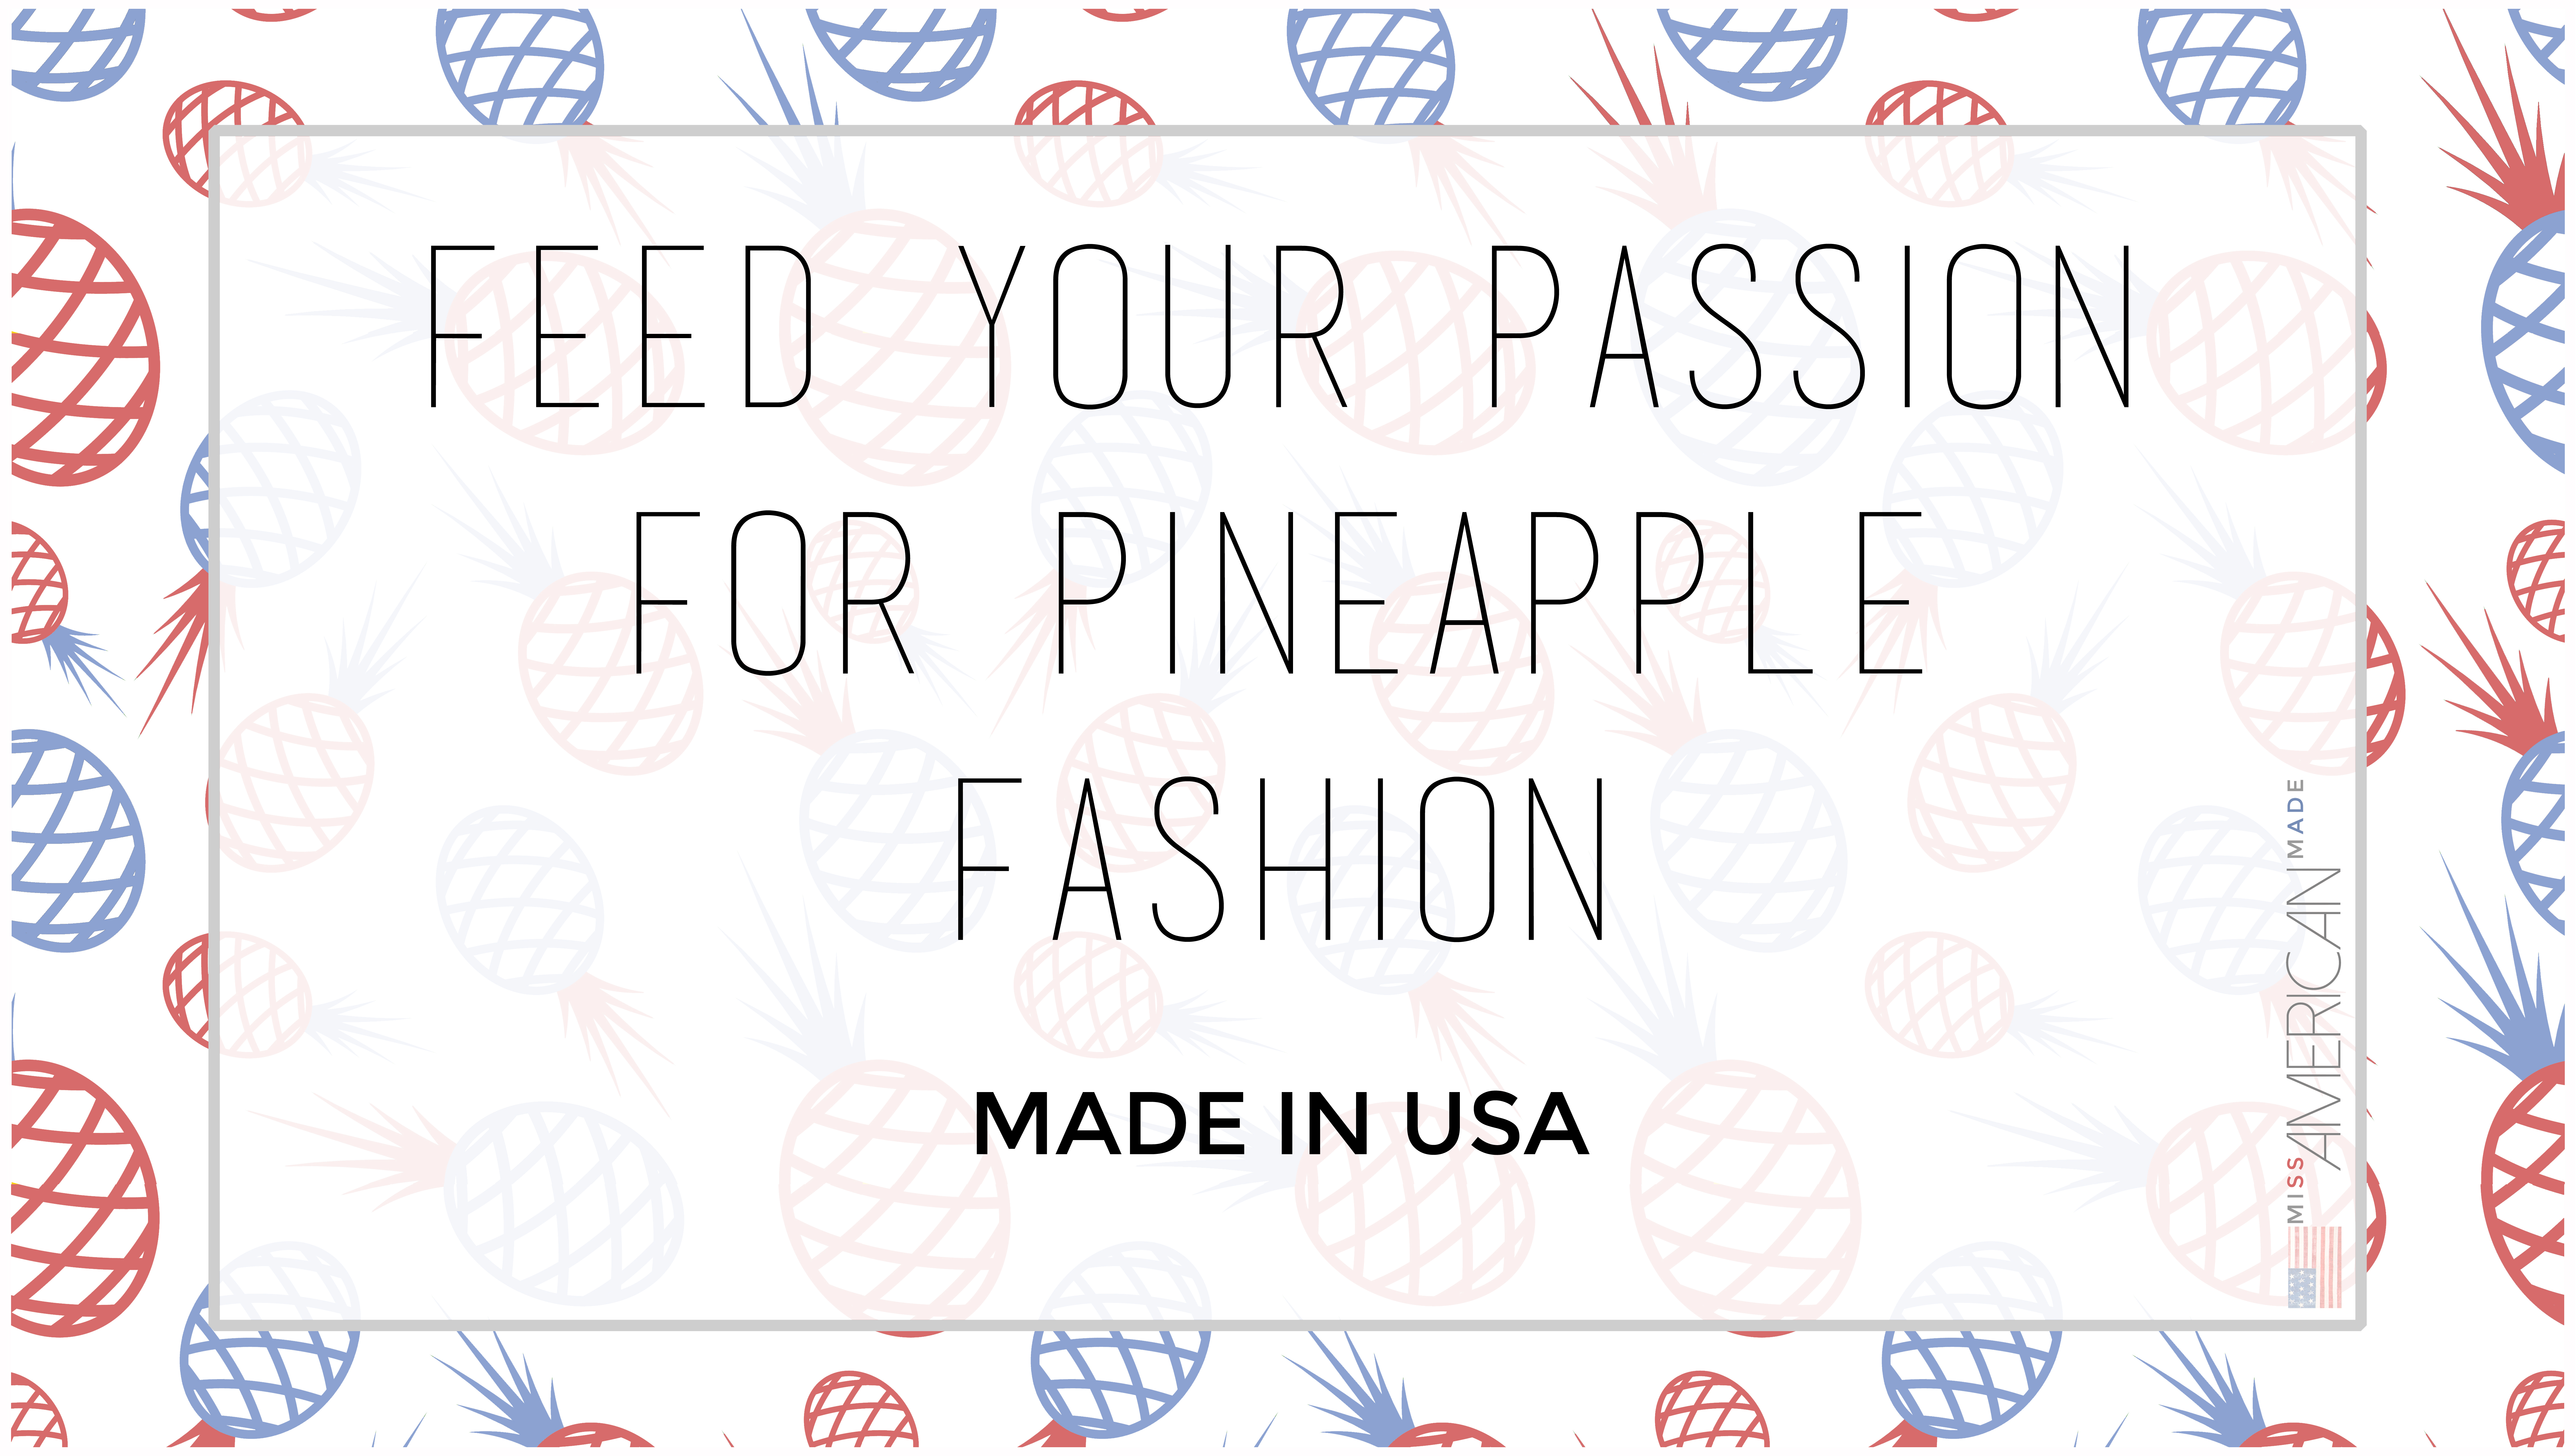 Feed your passion for pineapple fashion